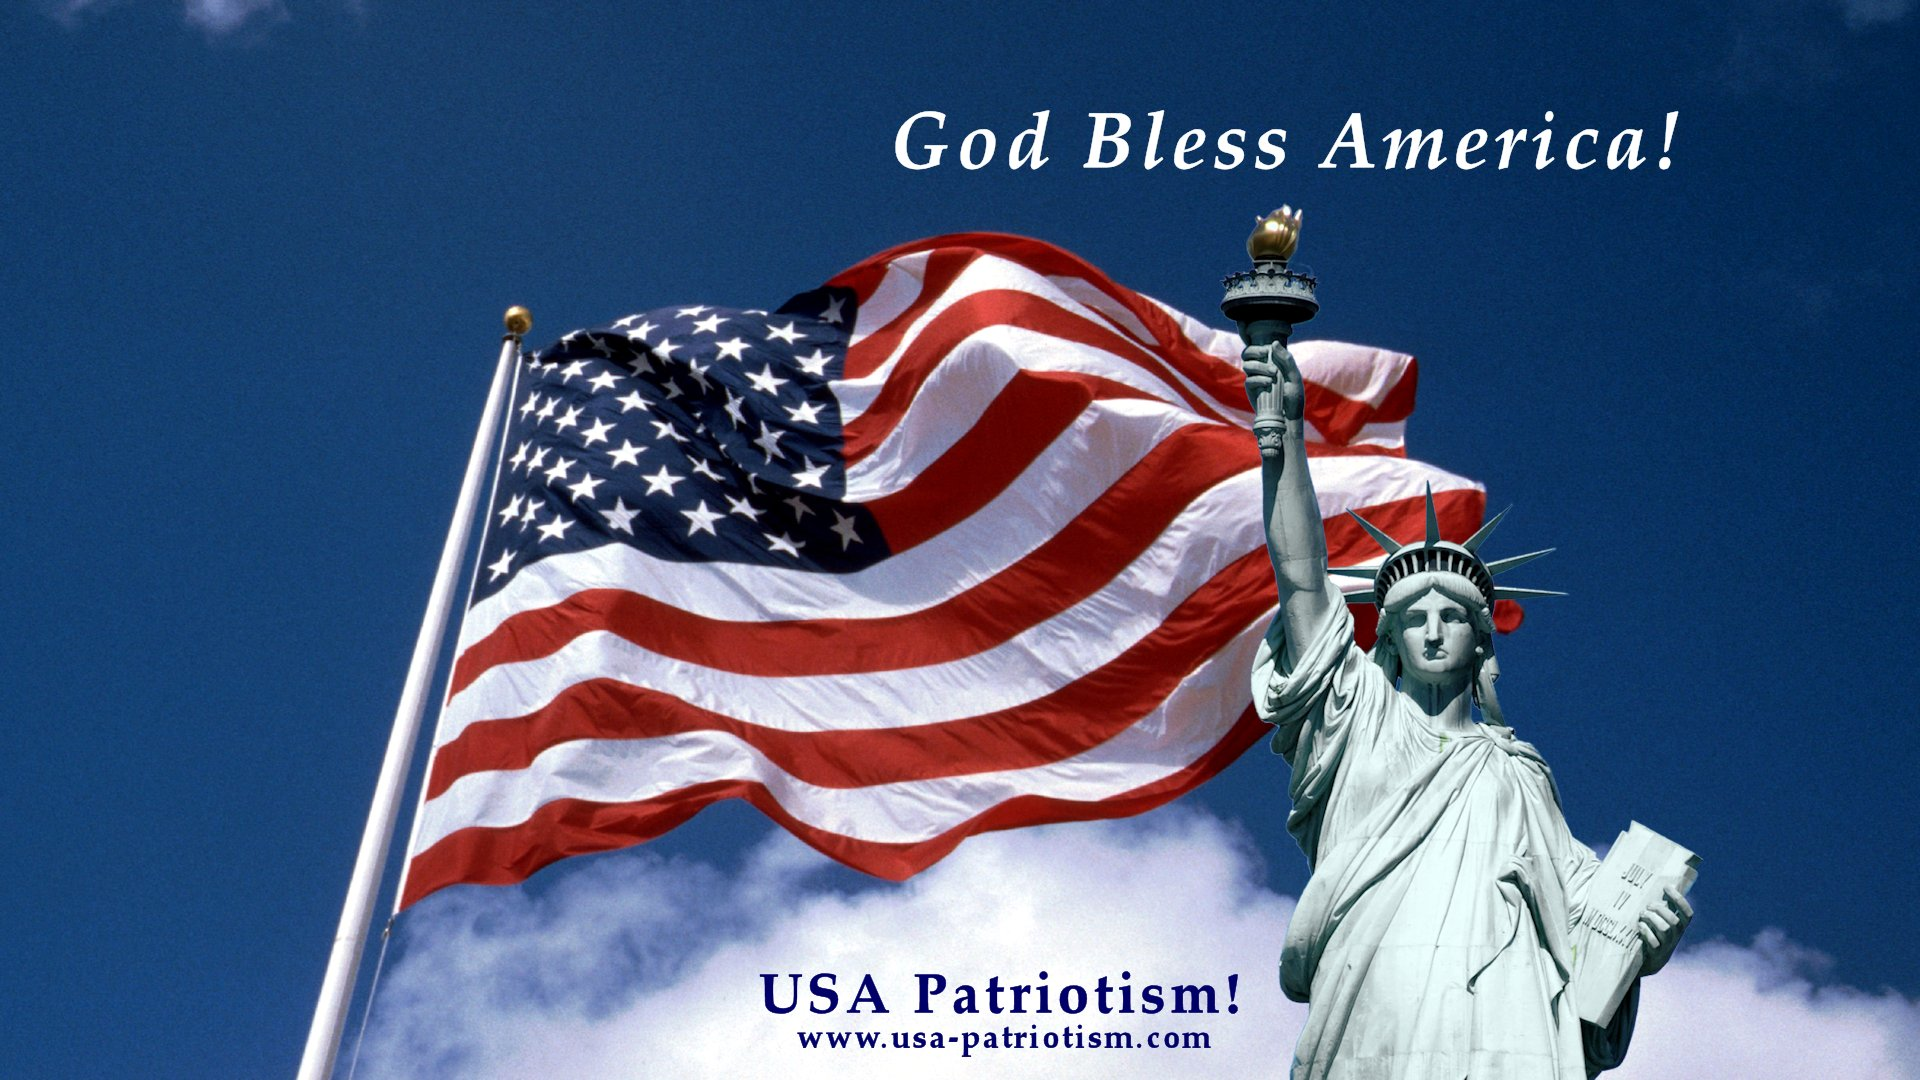 Usa patriotism patriotic banners and backgrounds for free use god bless america 1 voltagebd Choice Image